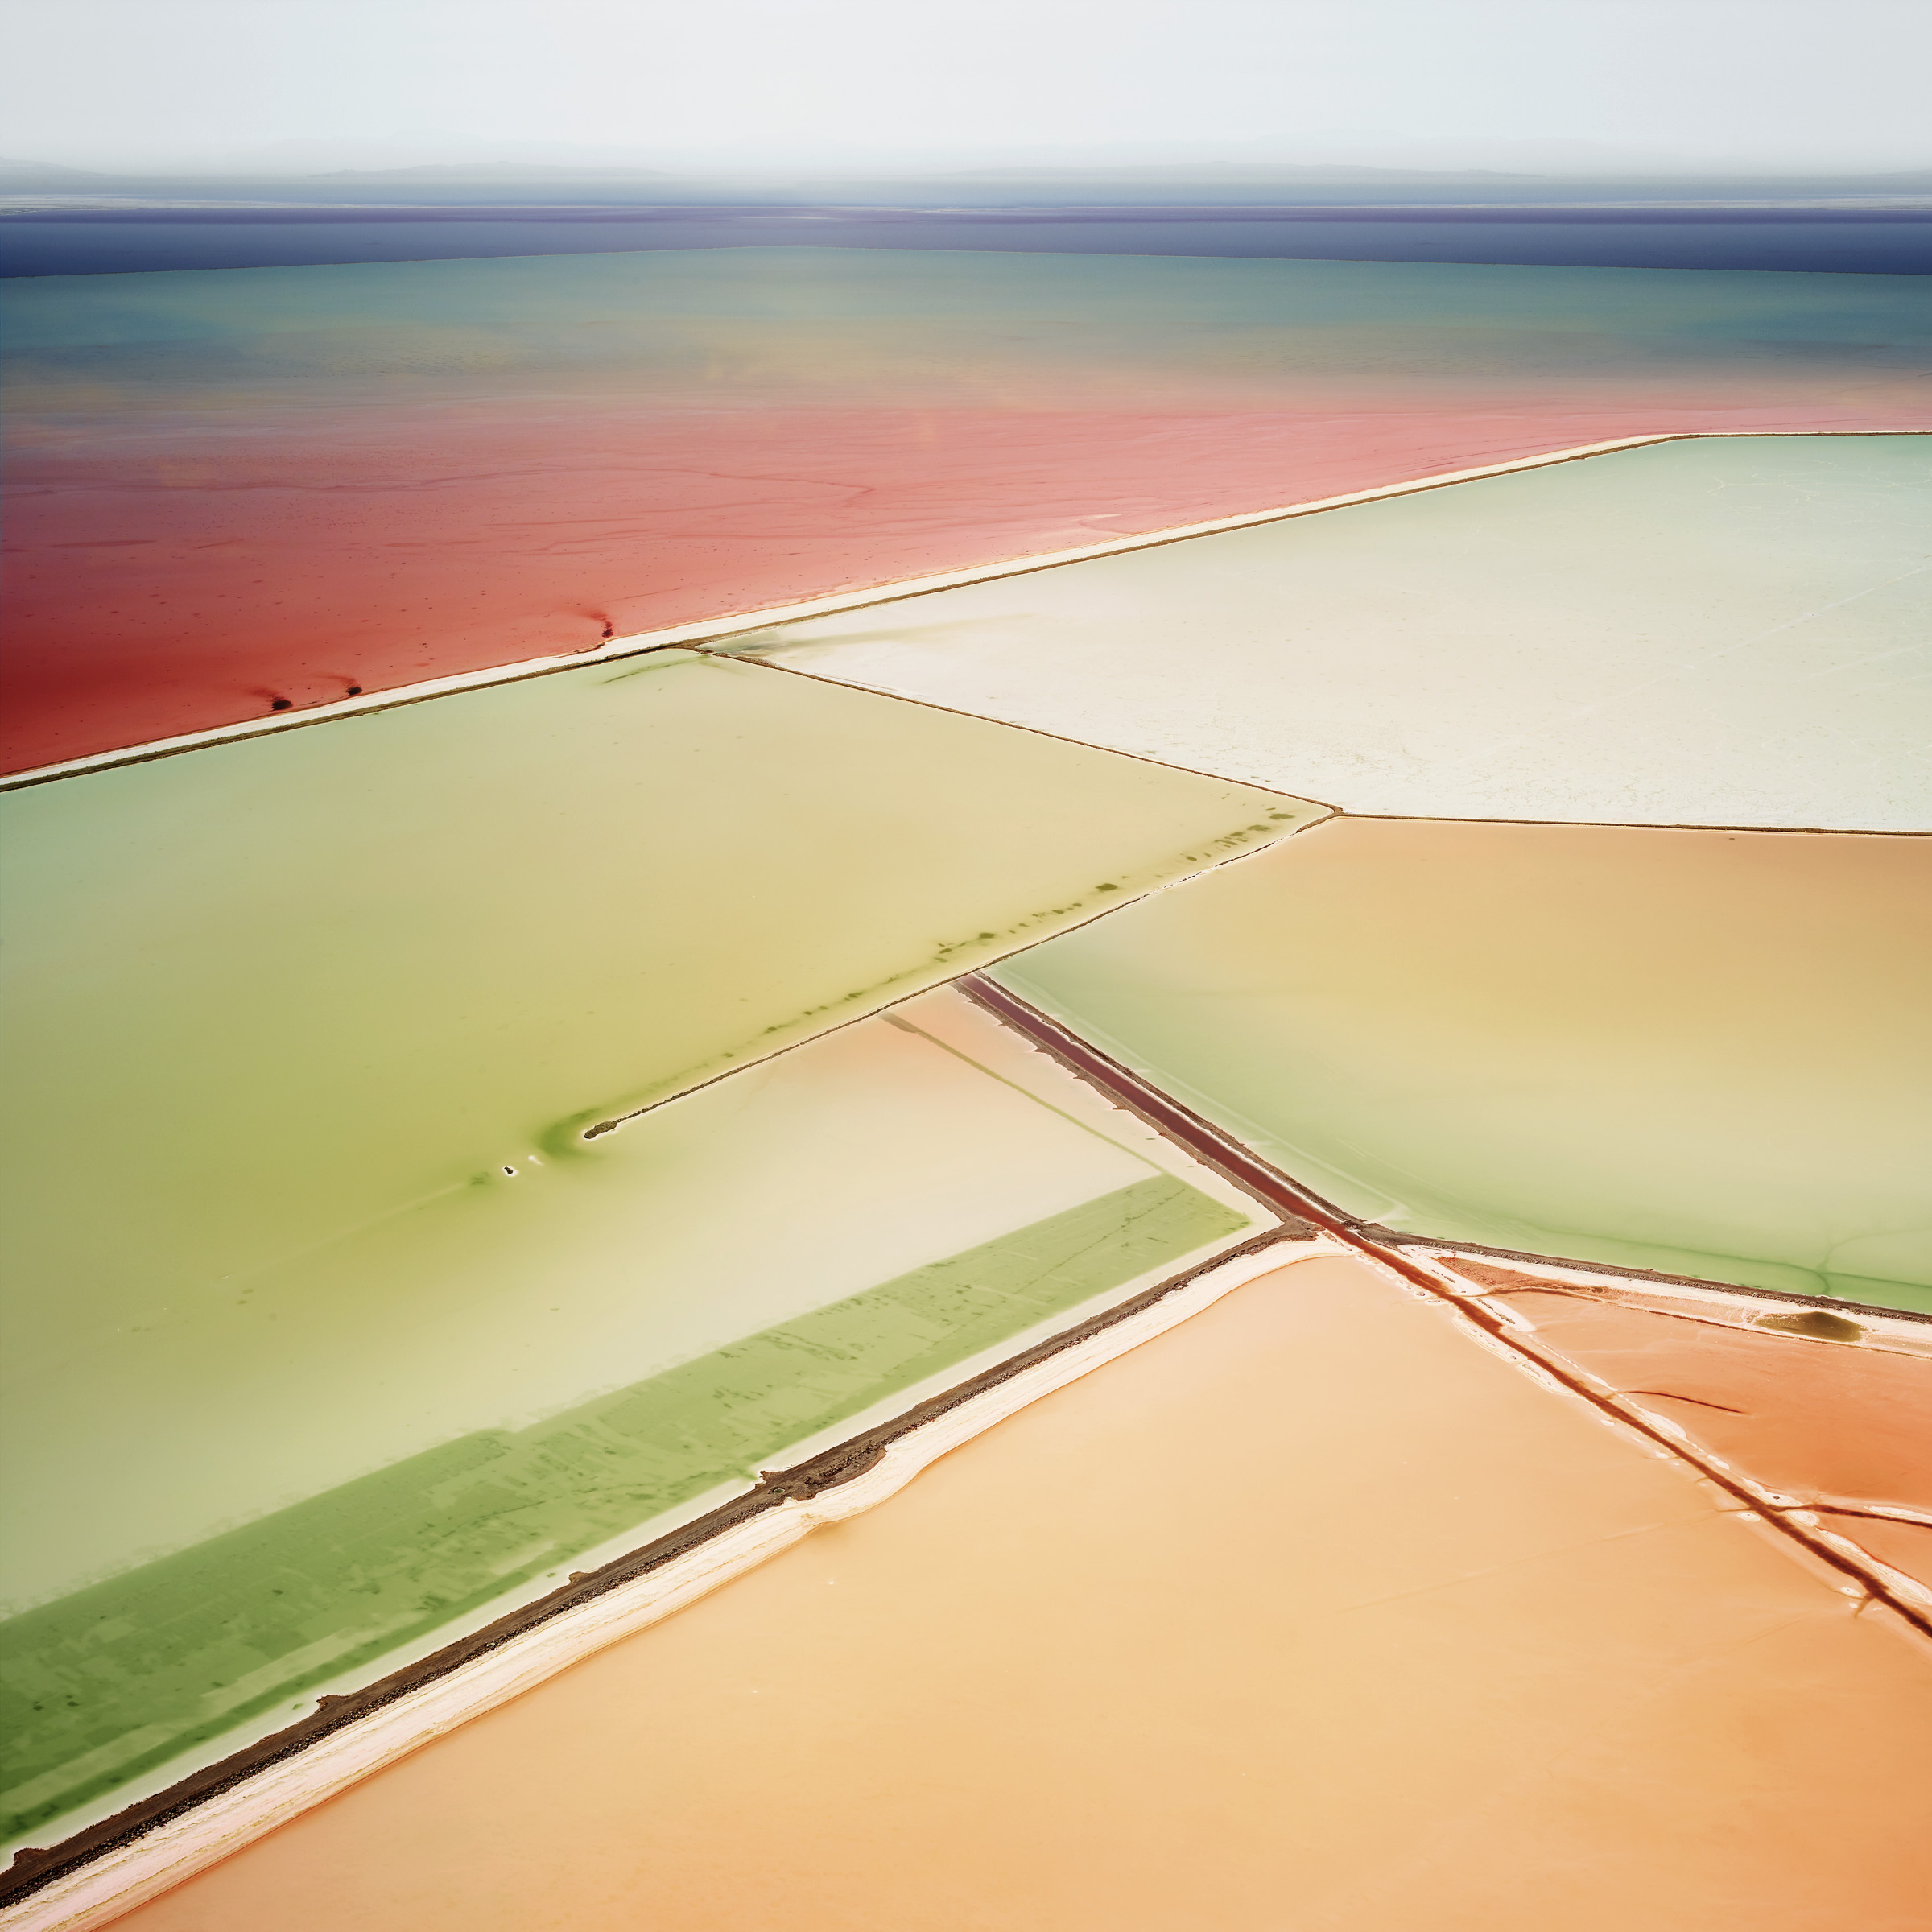 "David Burdeny, ""Saltern Study 06, Great Salt Lake, Utah, 2015"" (2015), archival pigment print PHOTO CREDIT: Courtesy of Foster/White Gallery"